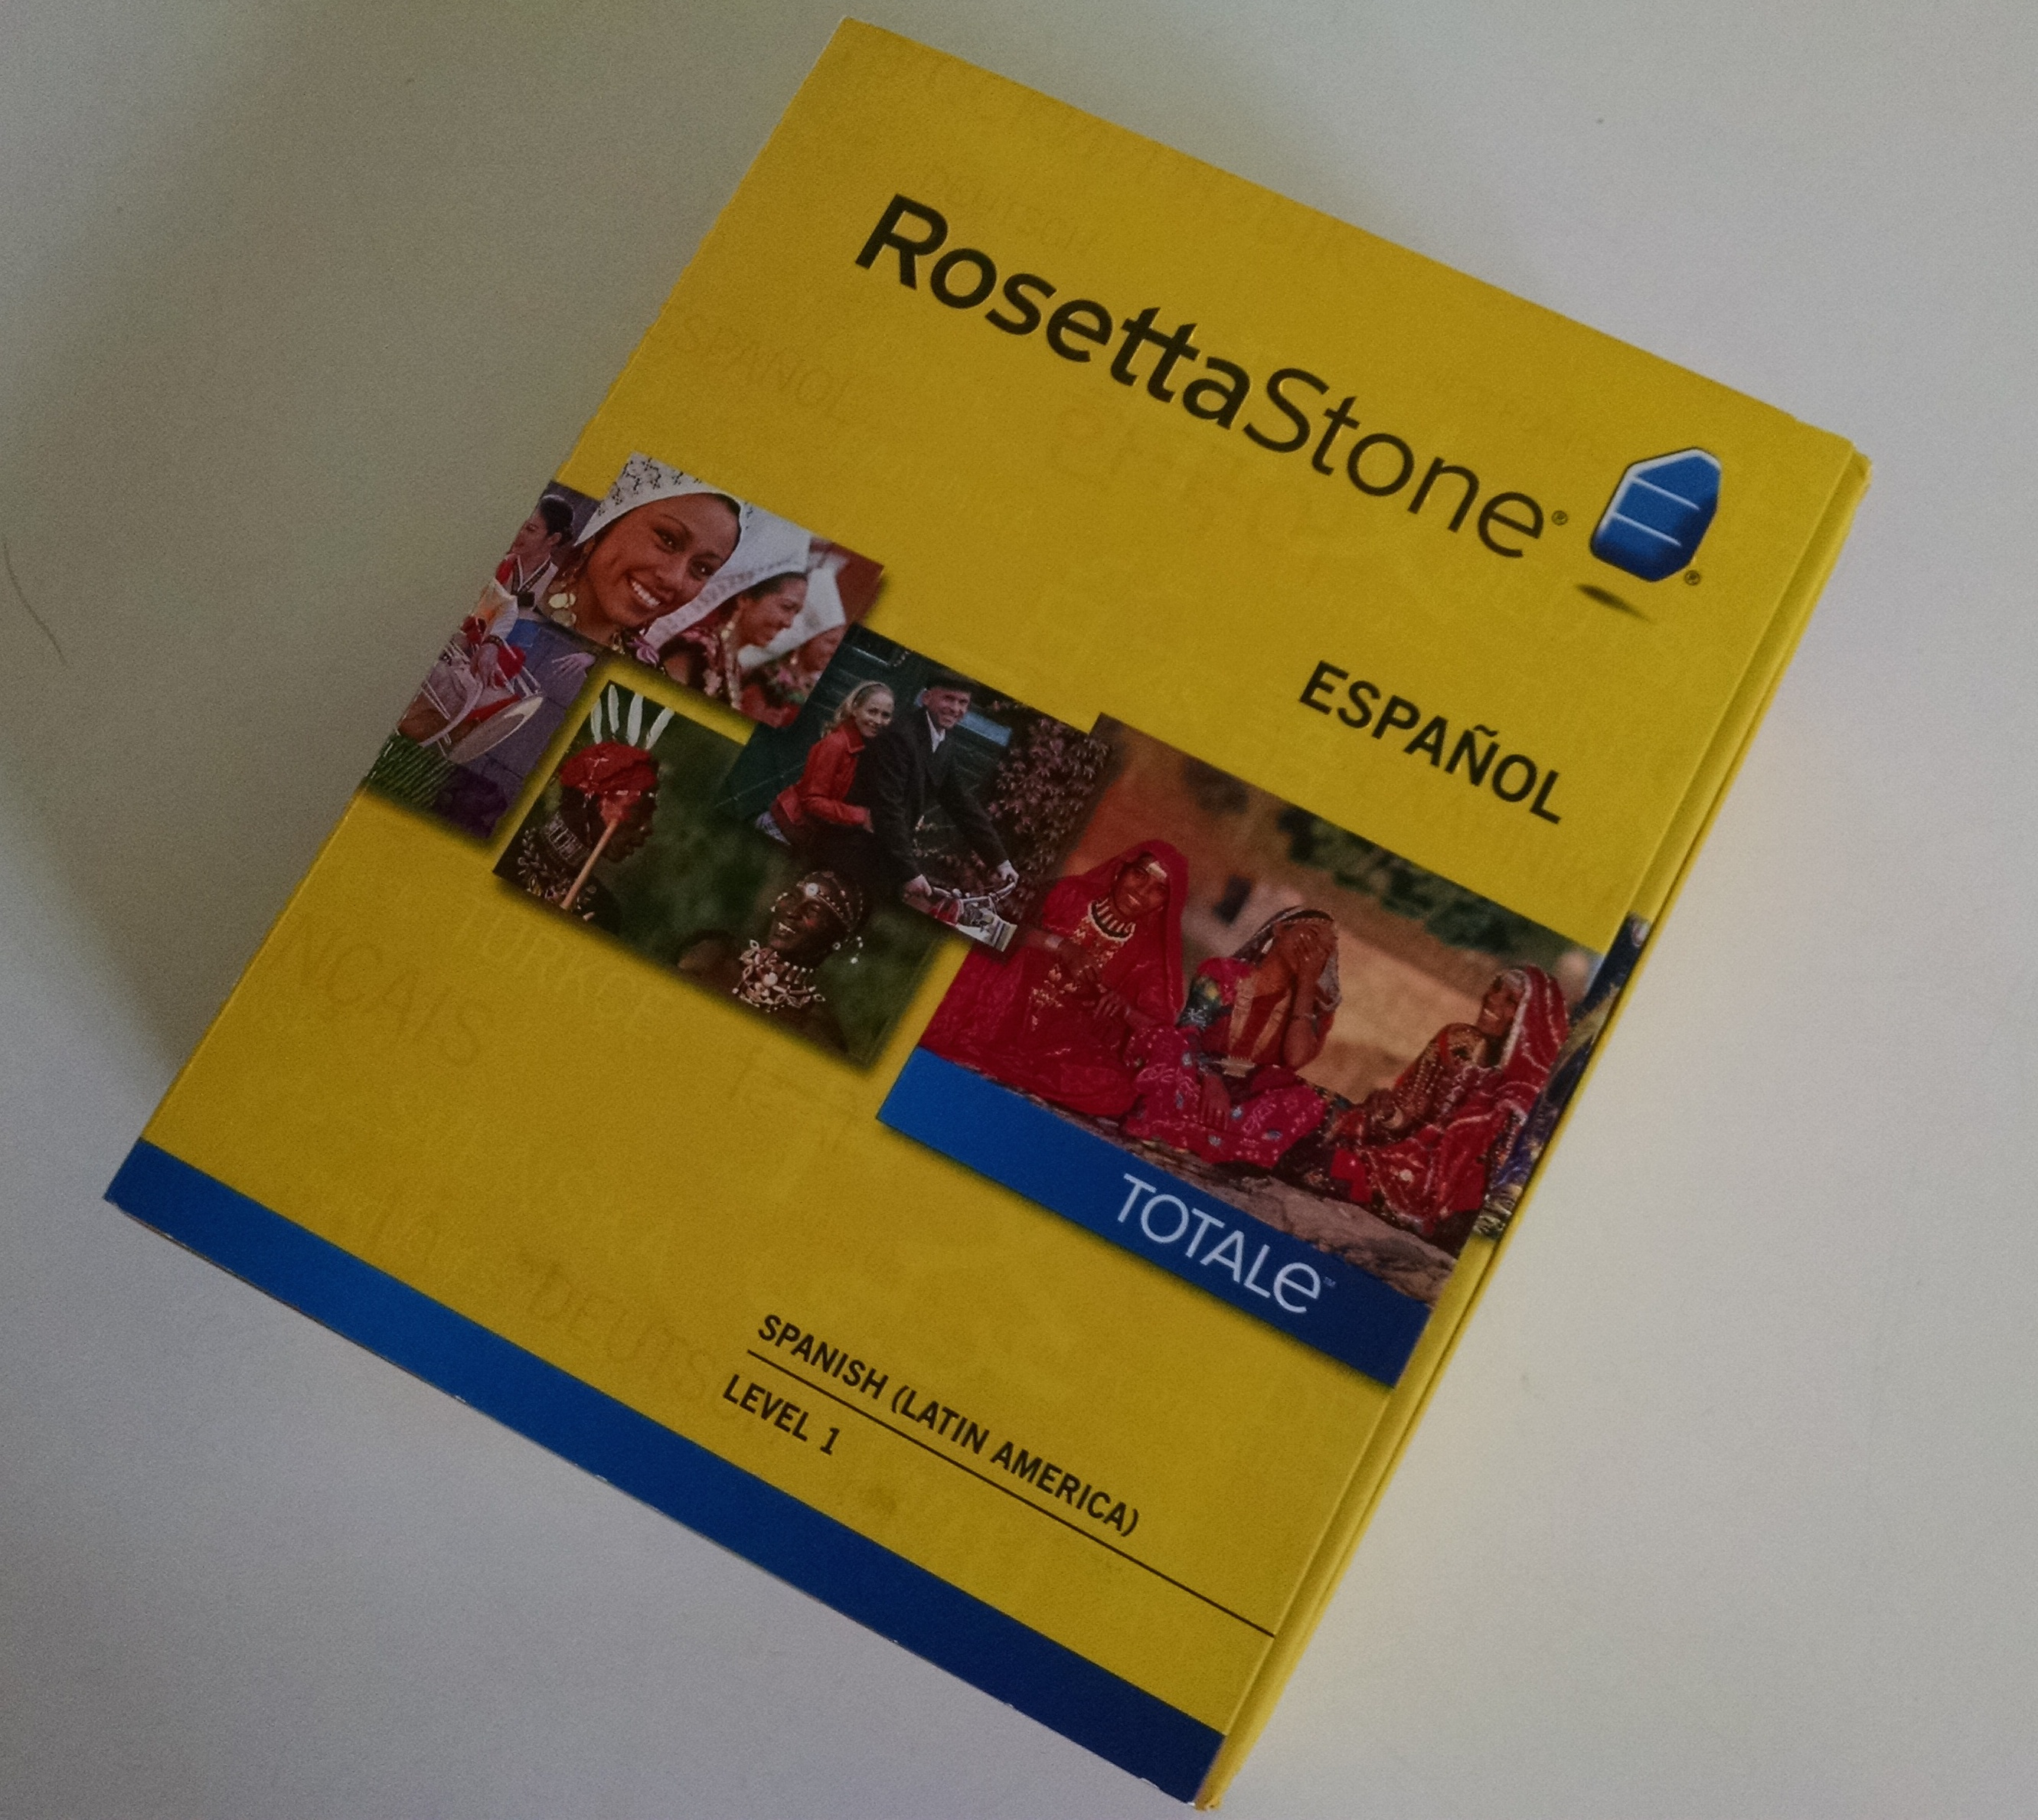 how to download rosetta stone for free